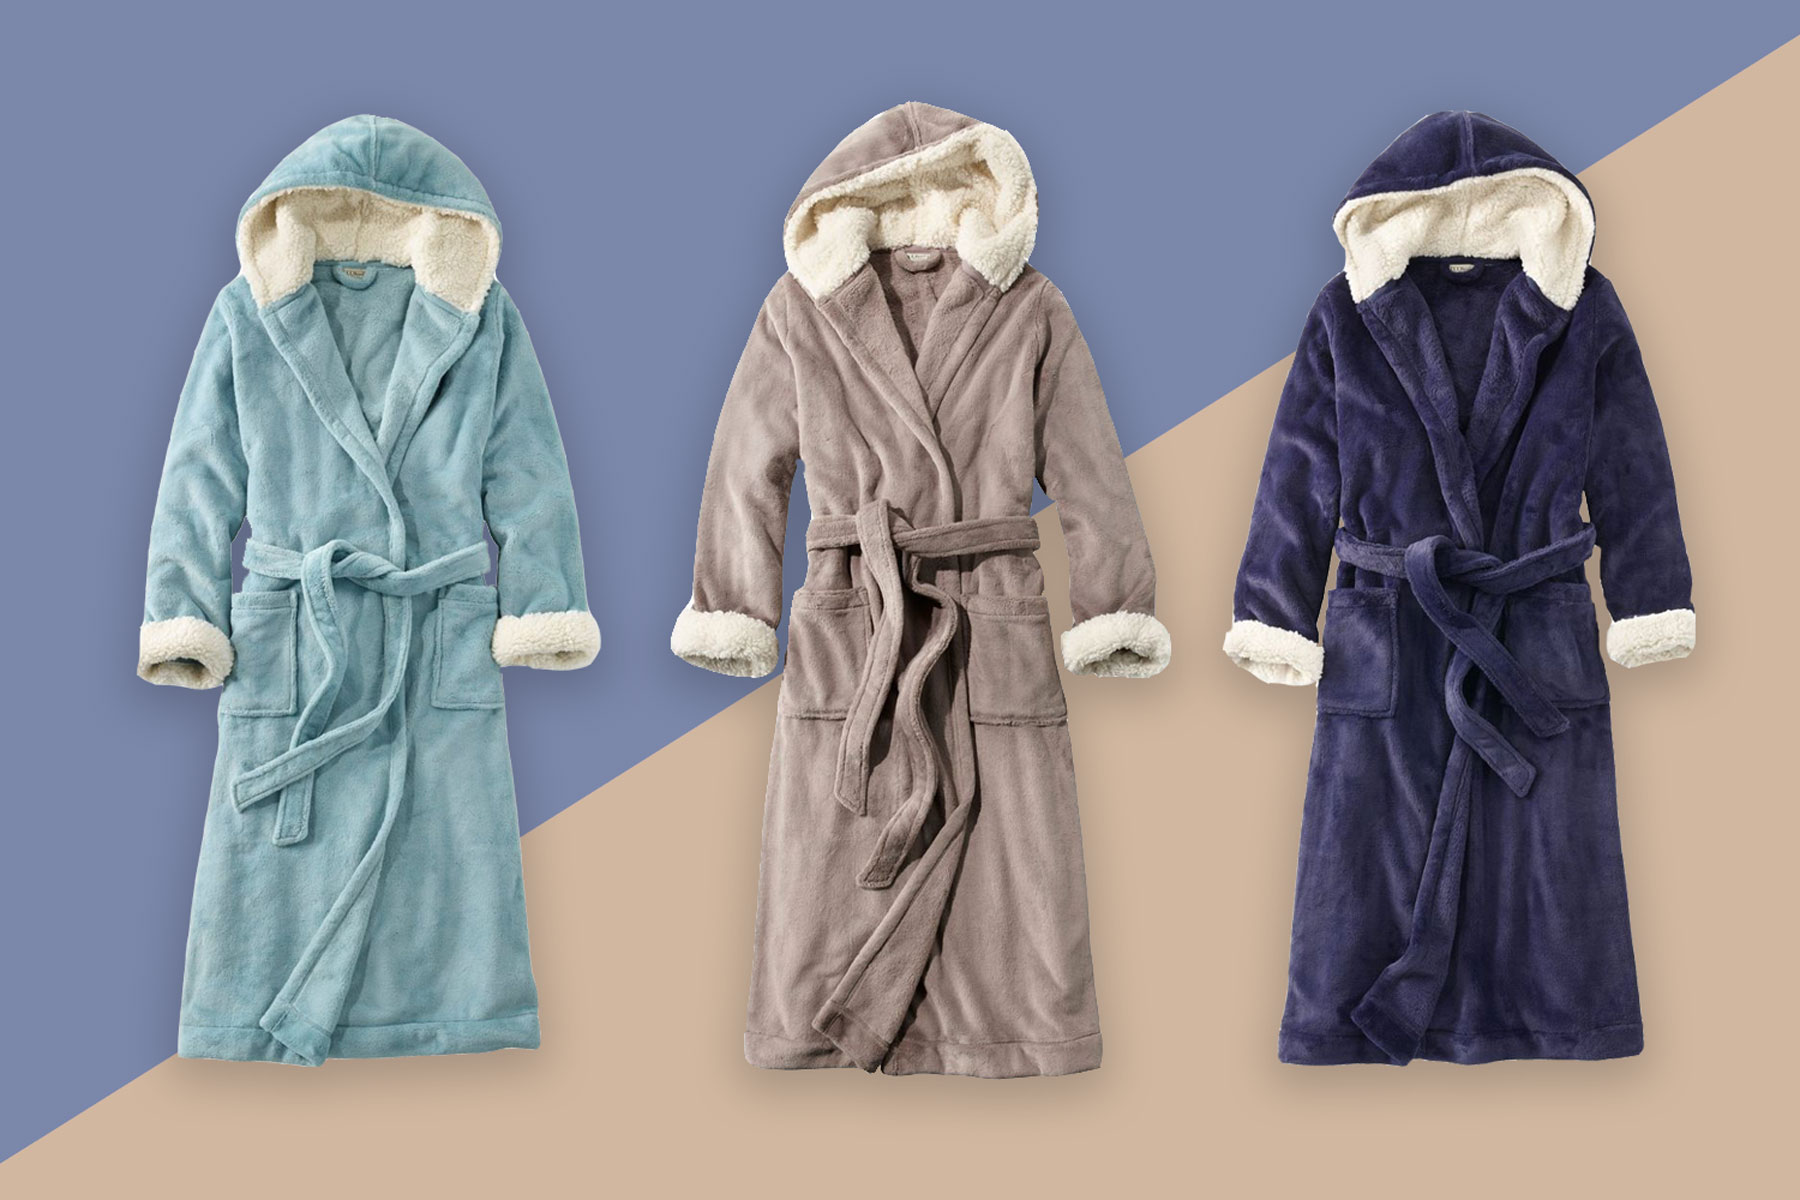 Light blue, grey, and navy bathrobes